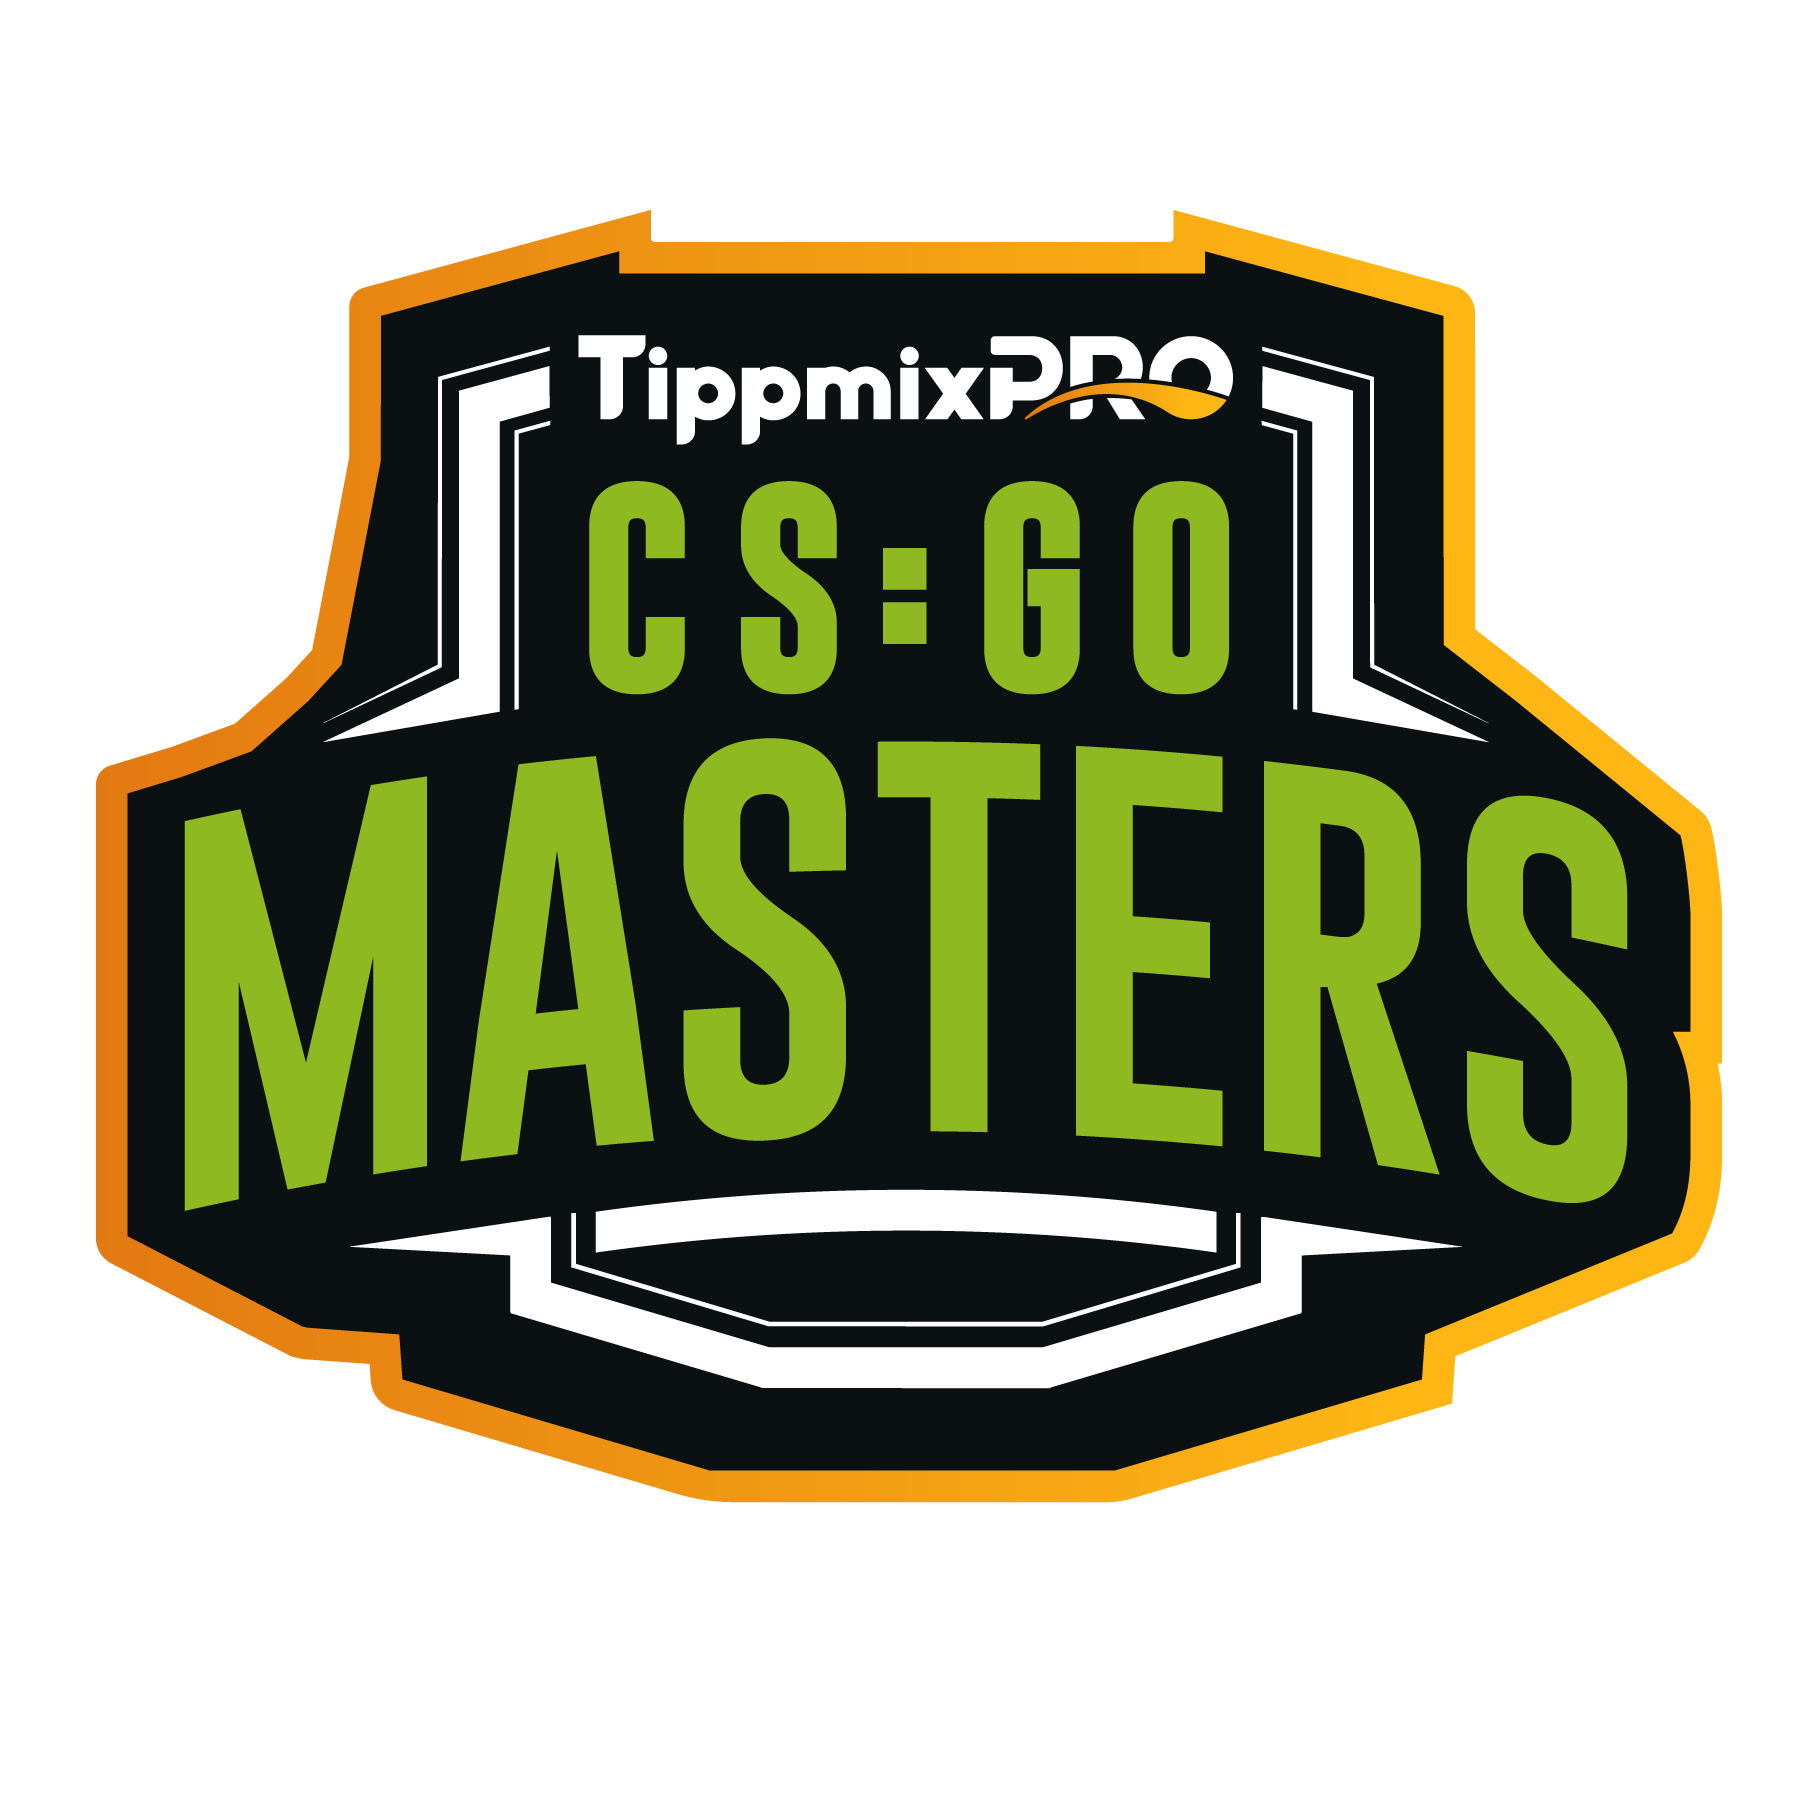 TippmixPro Masters 2021